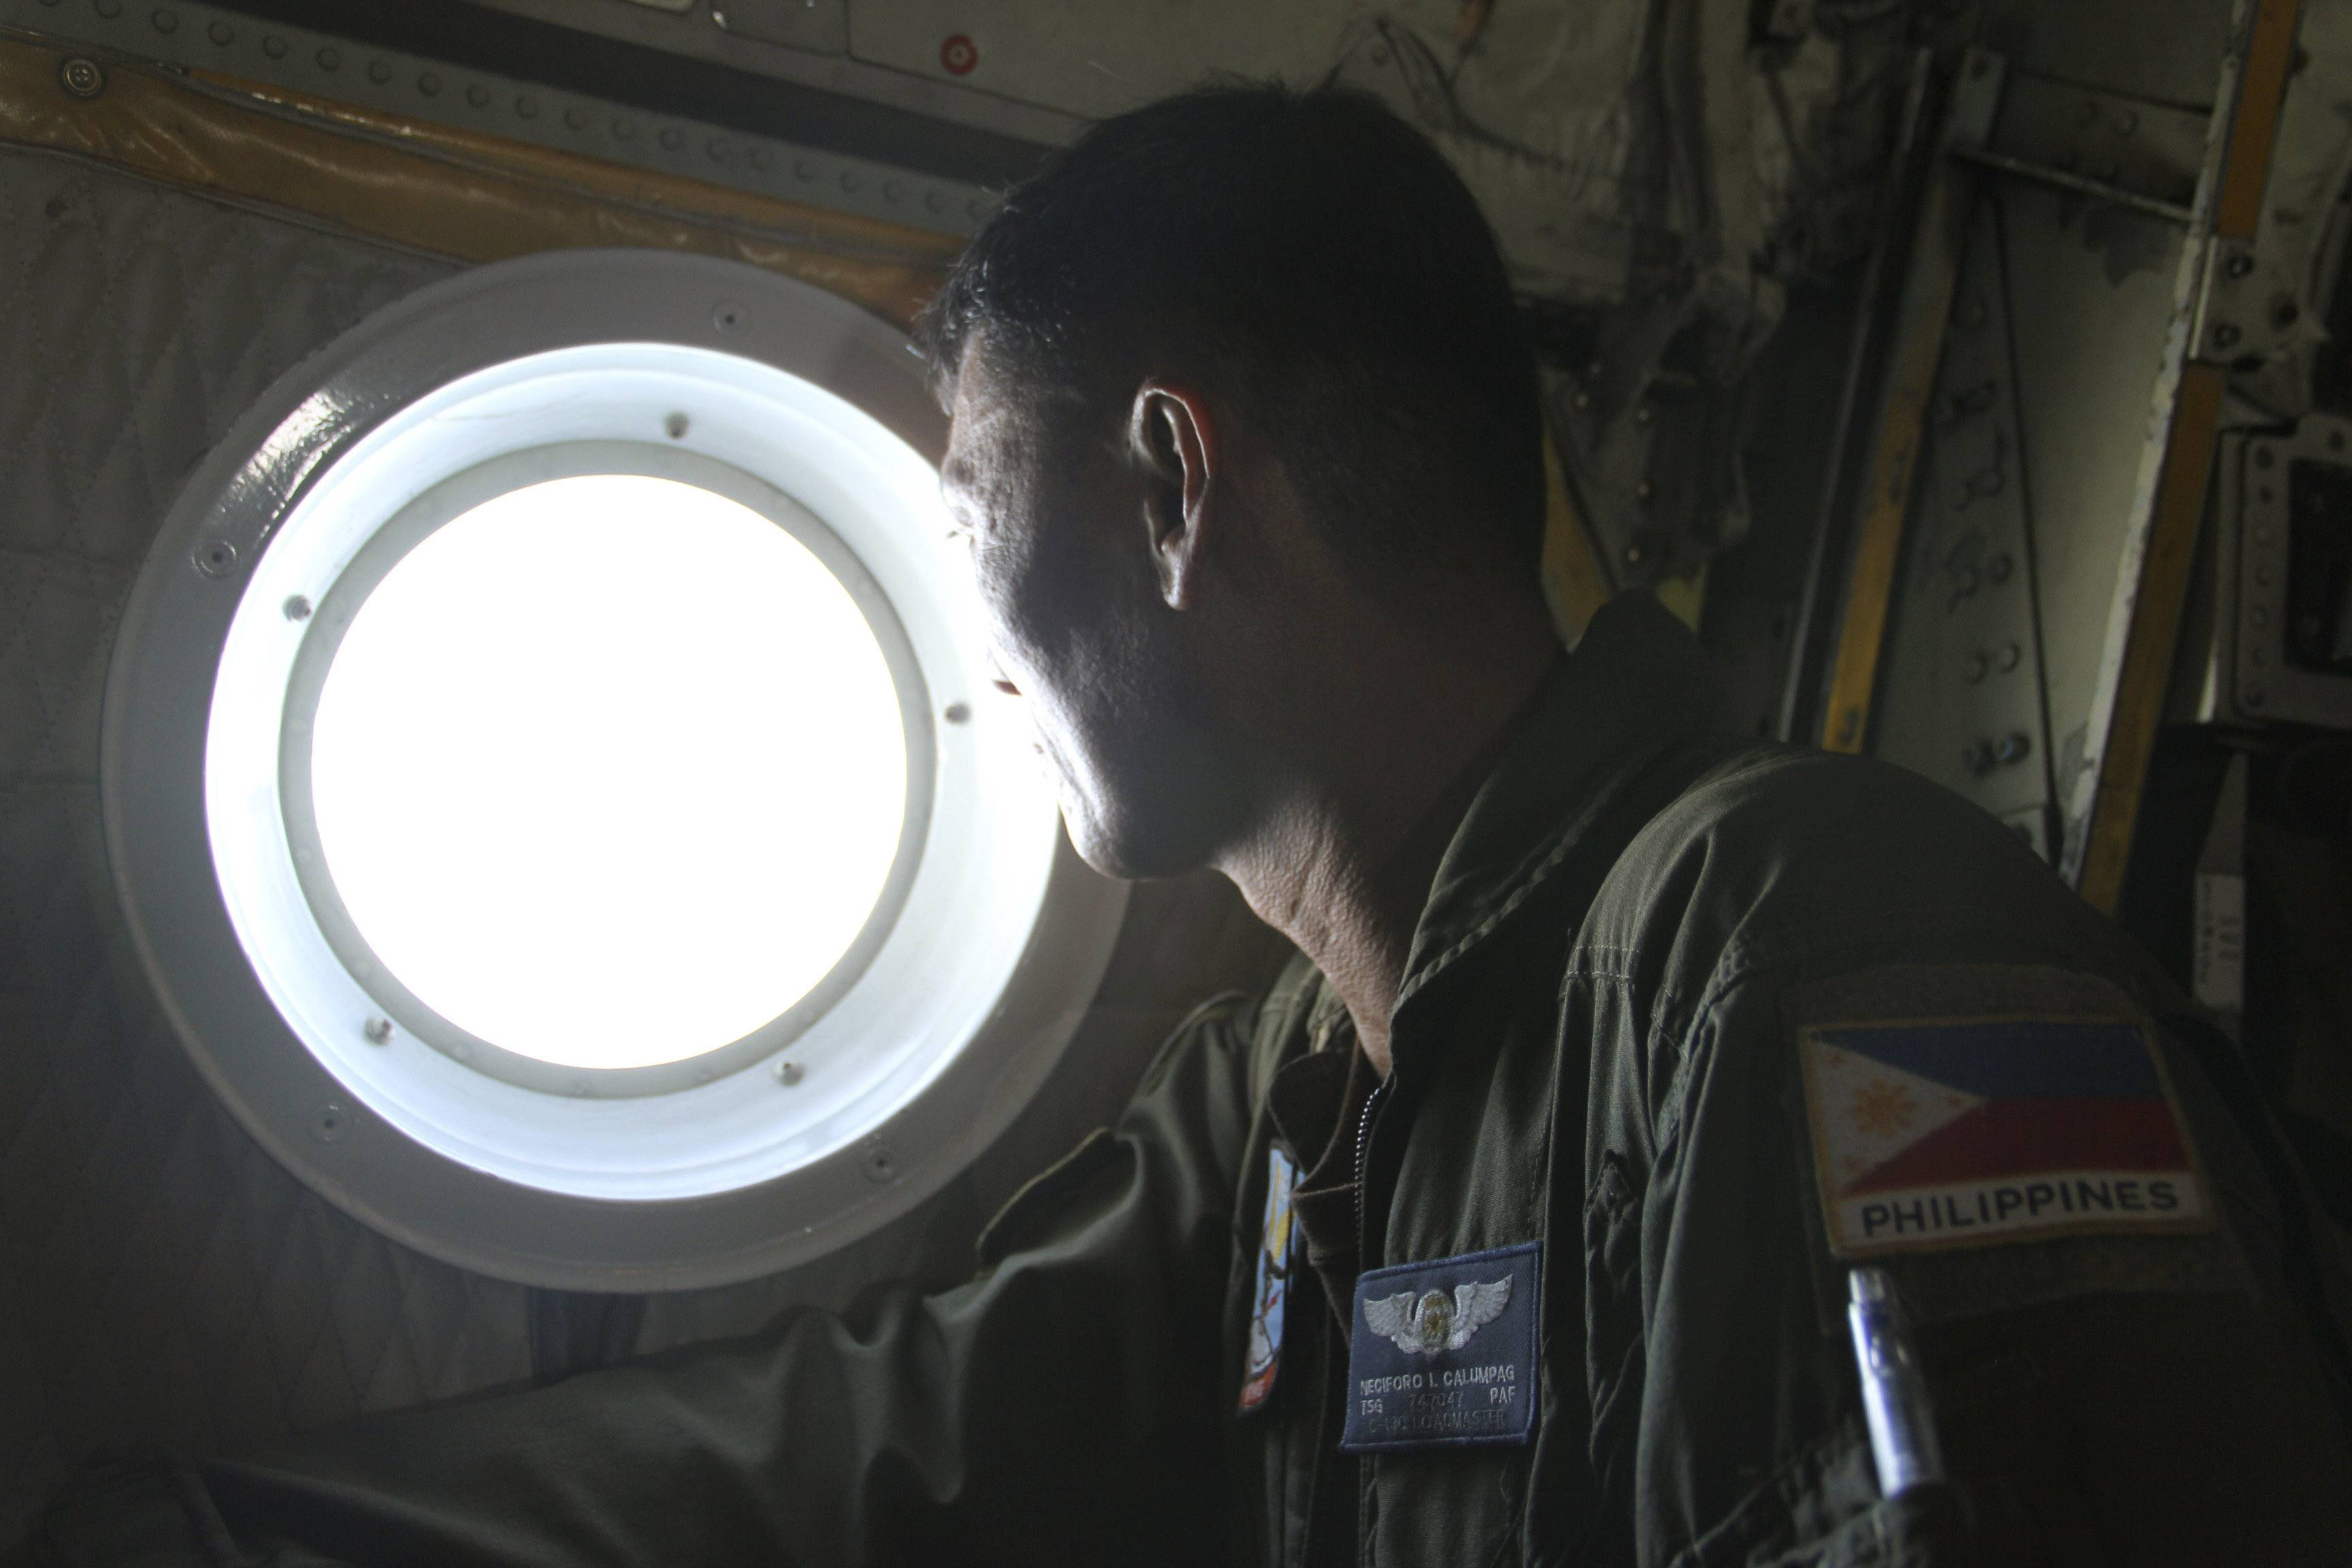 Philippine Air Force C-130 crew members continue their search and rescue mission over the South China Sea more than four days after a Malaysia Airlines jetliner went missing en route to Beijing. Authorities acknowledged Wednesday they didn't know which direction the plane carrying 239 passengers was heading when it disappeared, vastly complicating efforts to find it.